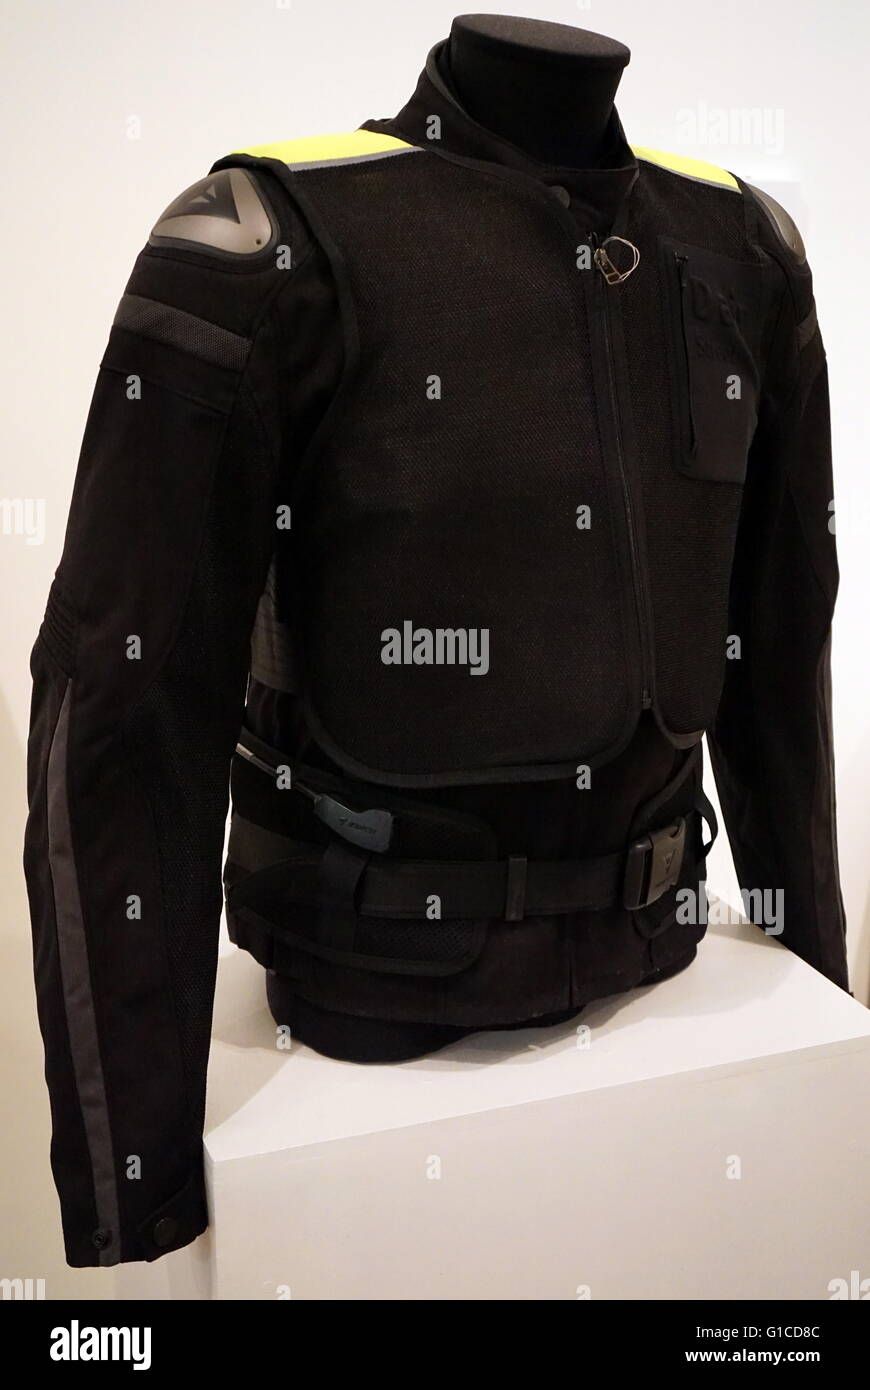 D-Air Bog- Street, an airbag for motorcyclists. Designed by Vittorio Cafaggi/Dainese. Dated 2015 - Stock Image